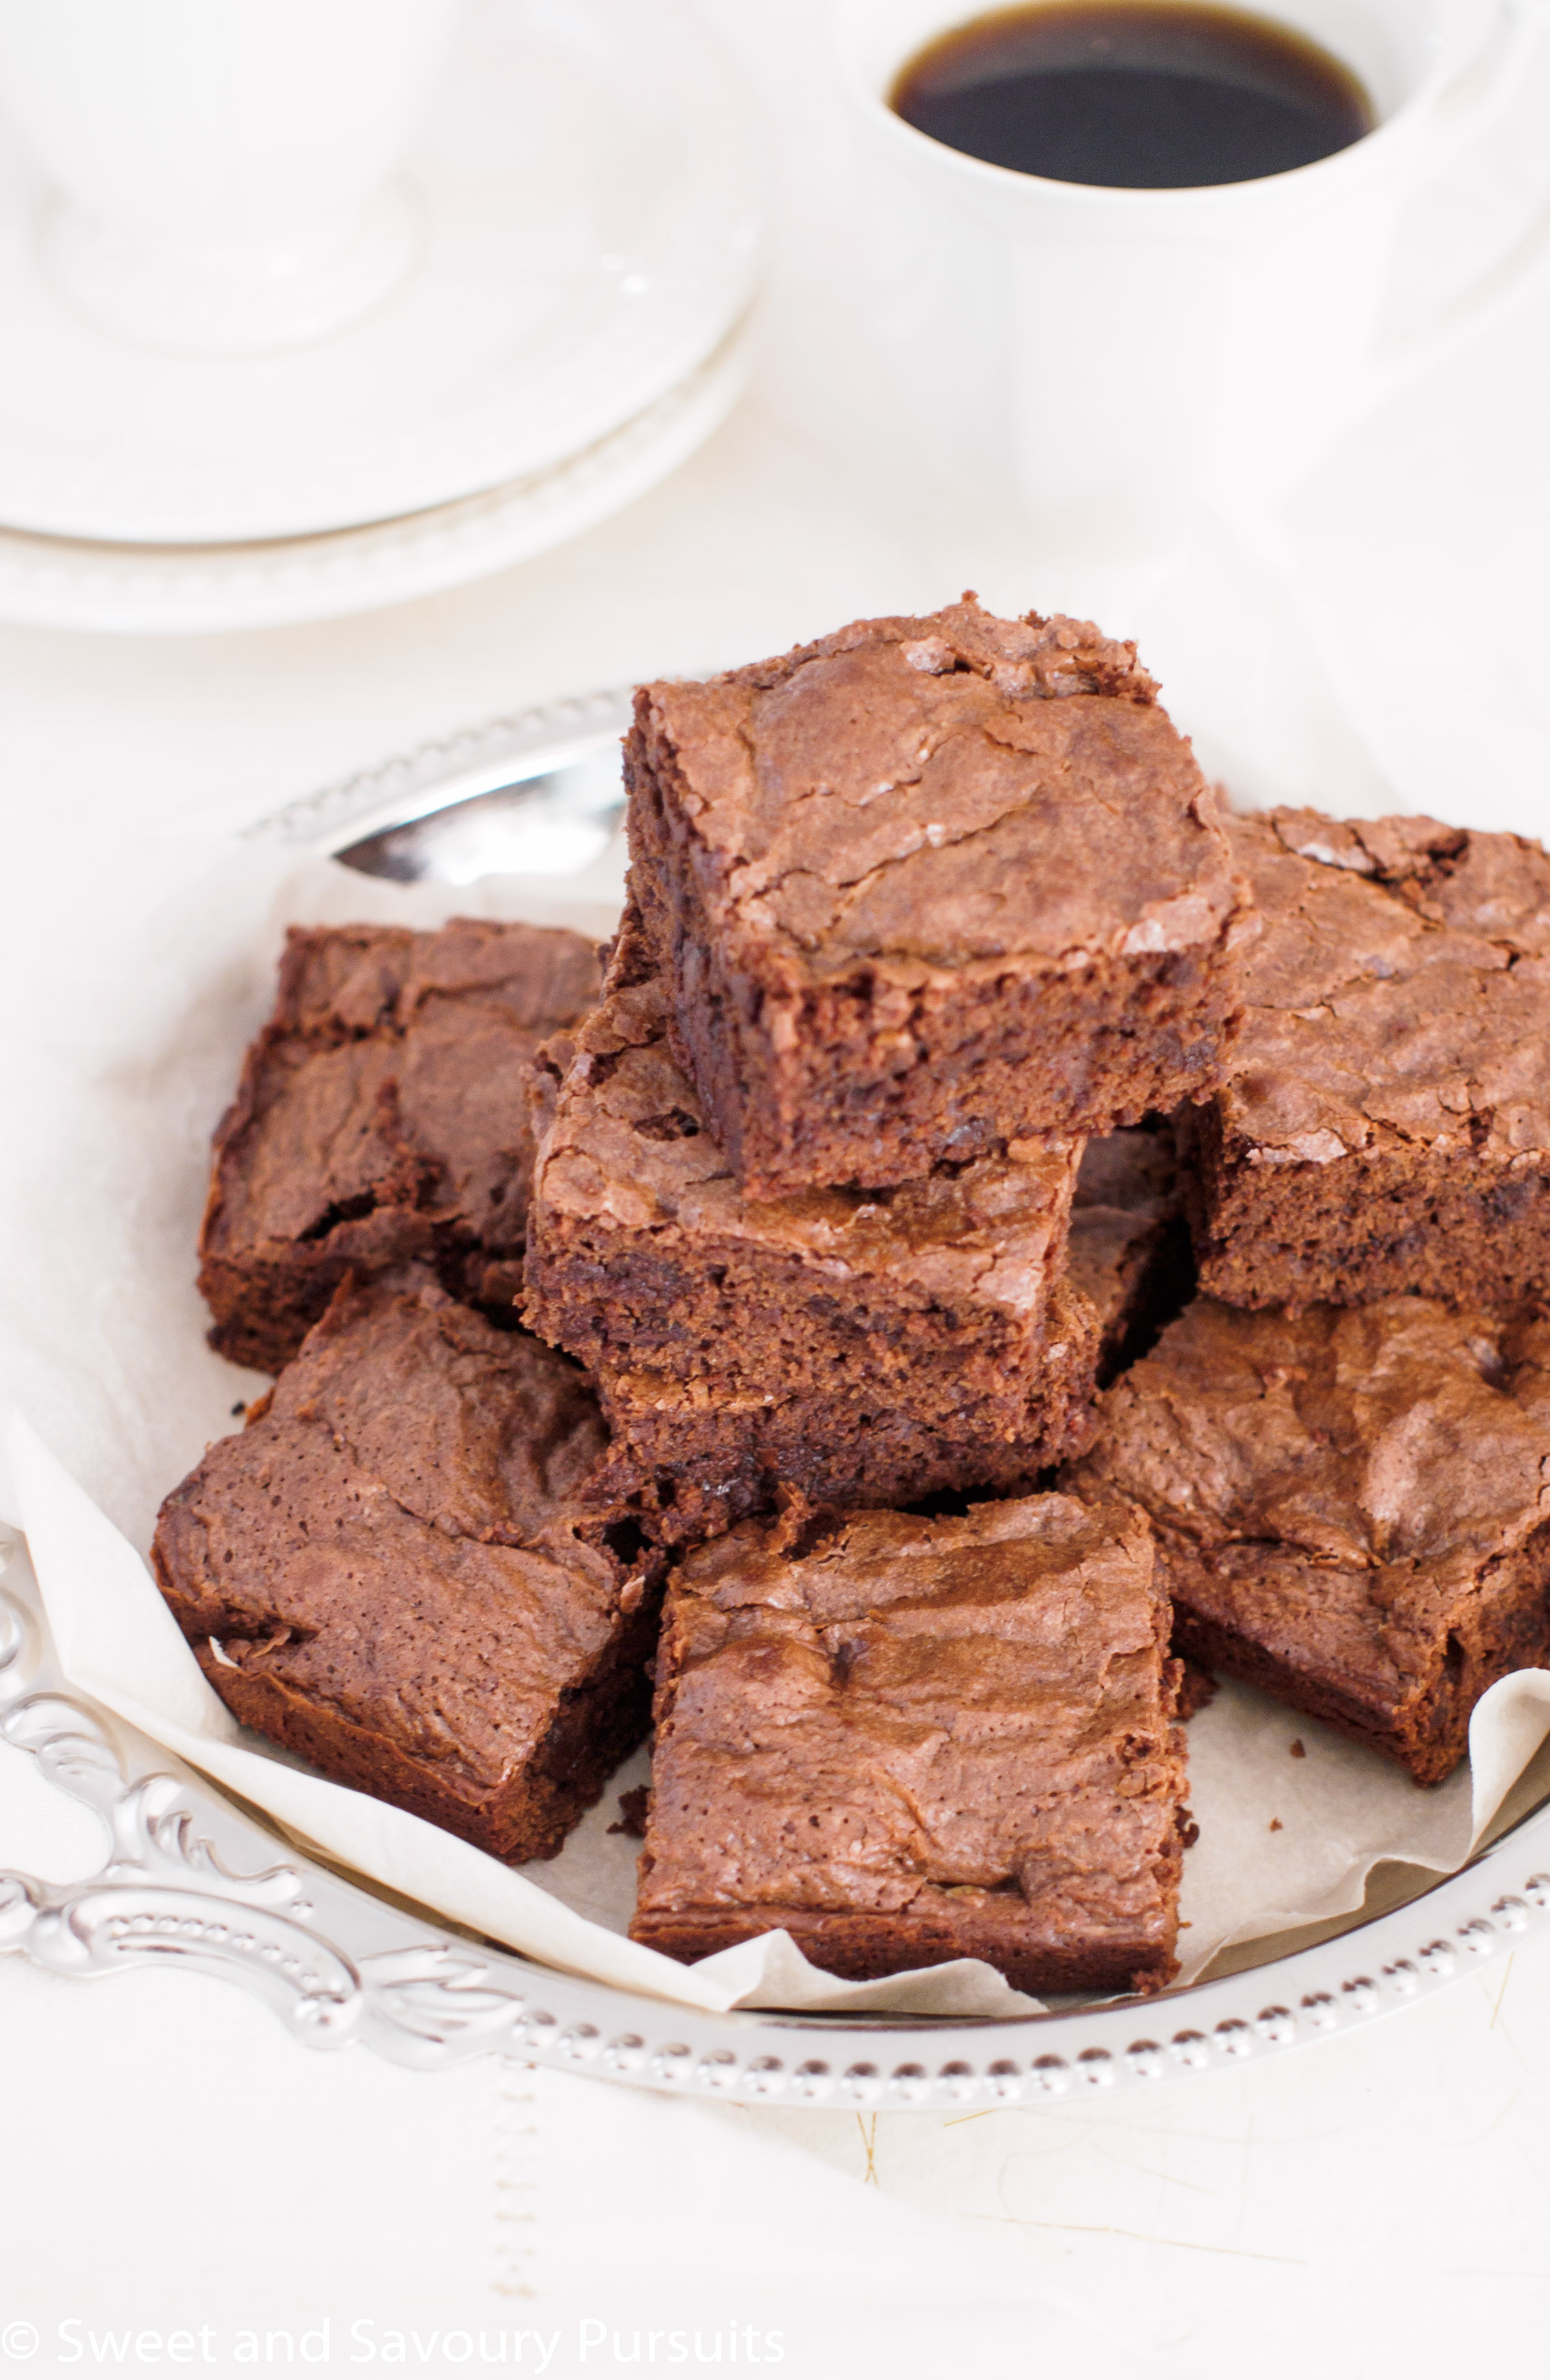 These Triple Chocolate Brownies are not overly sweet and have a wonderful chewy texture. Delicious served warm with a scoop of ice cream!